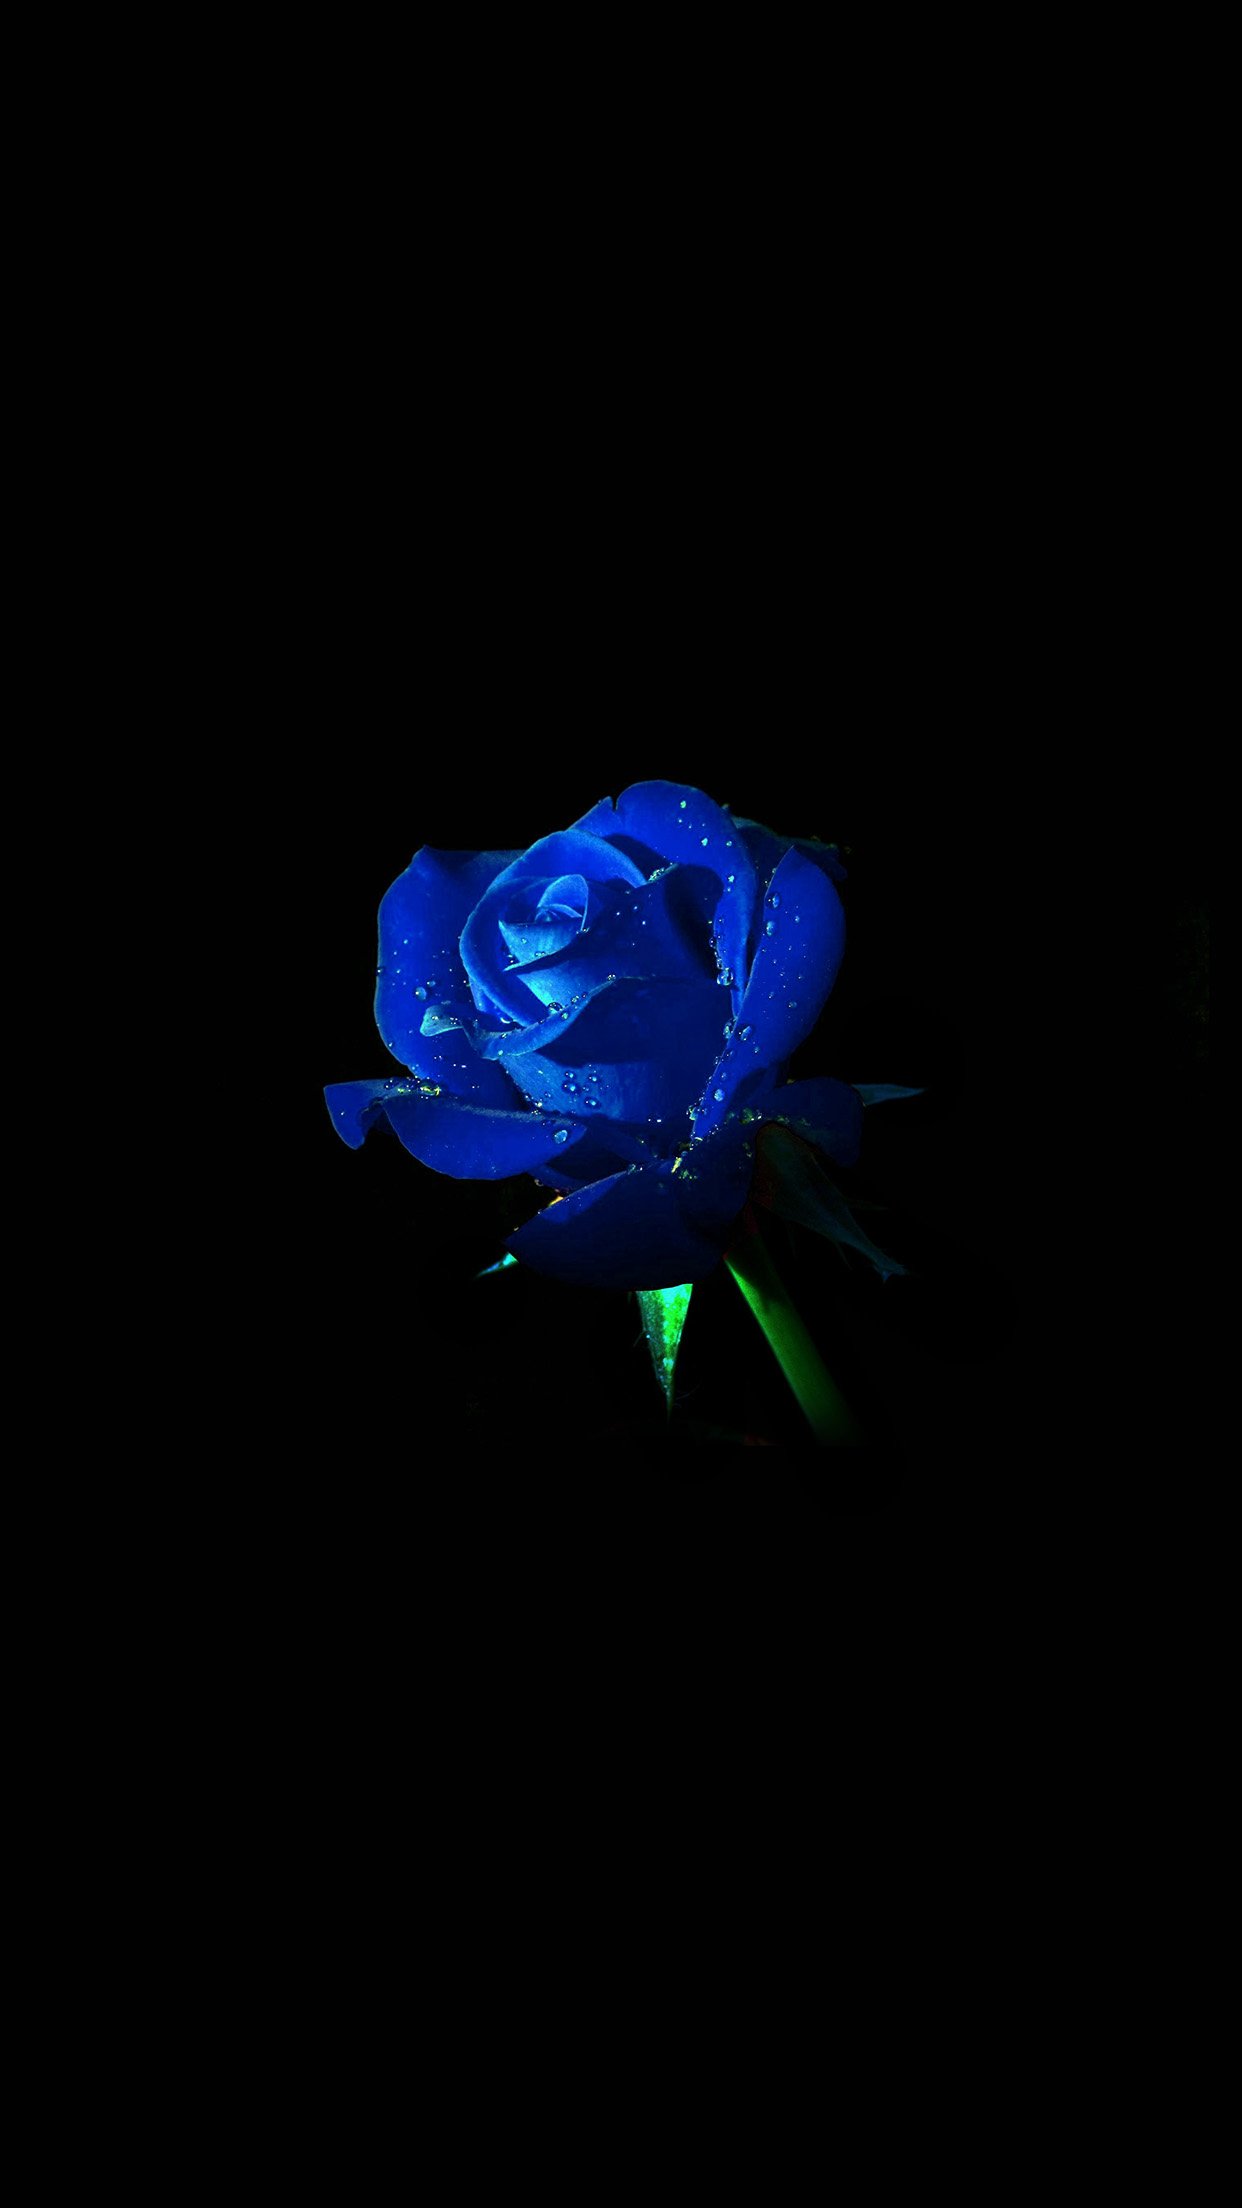 iphone7papers | iphone7 wallpaper | am02-blue-rose-dark-flower